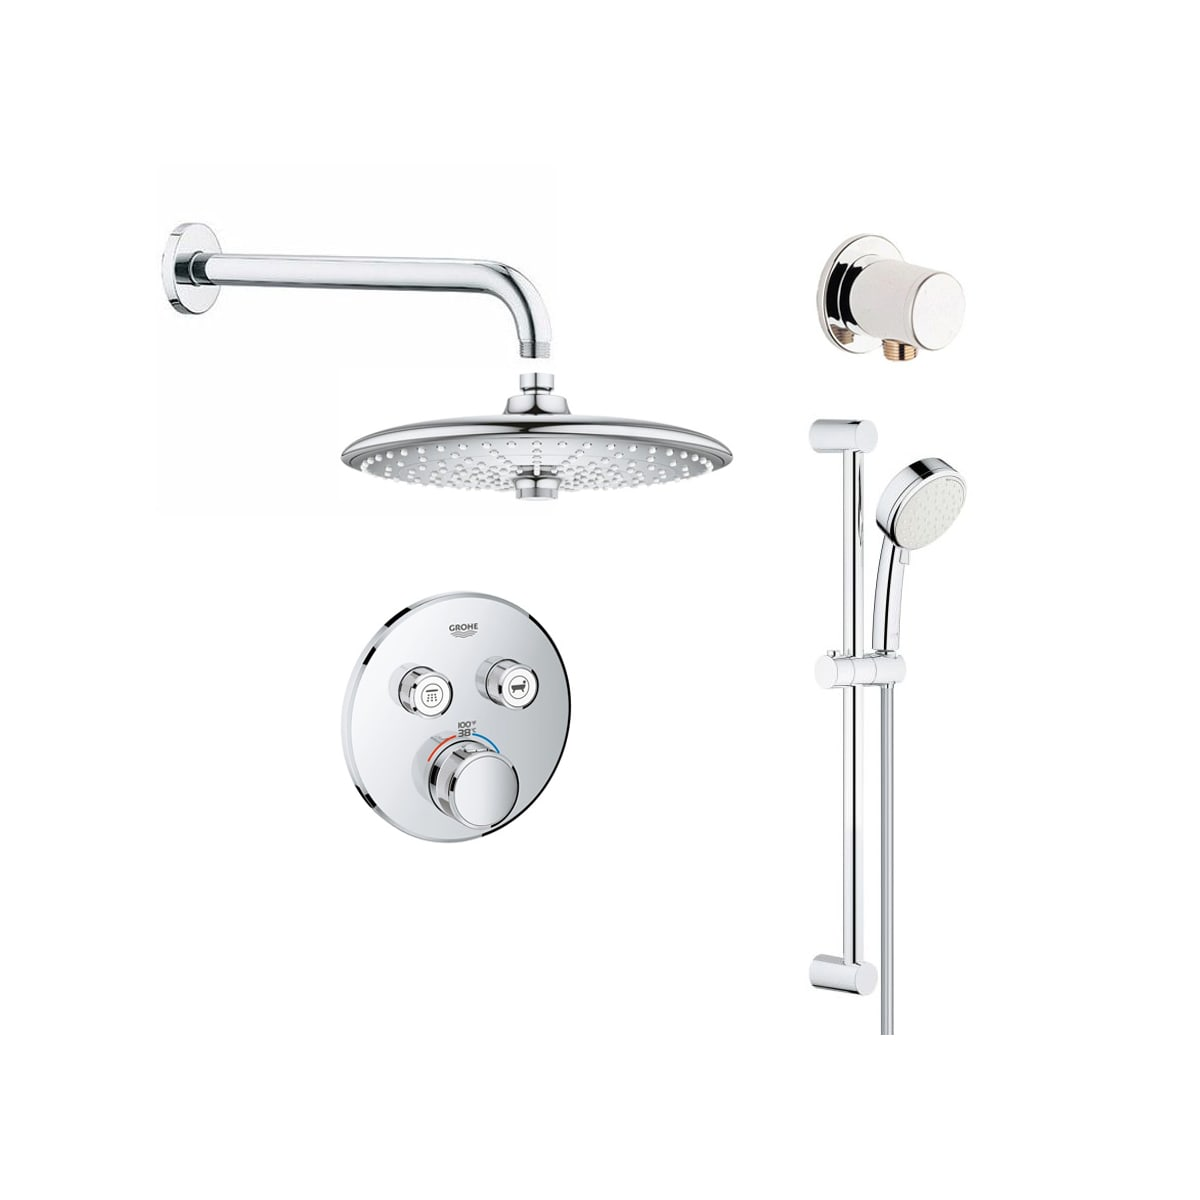 Grohe Gss Grohtherm Cir 04 A